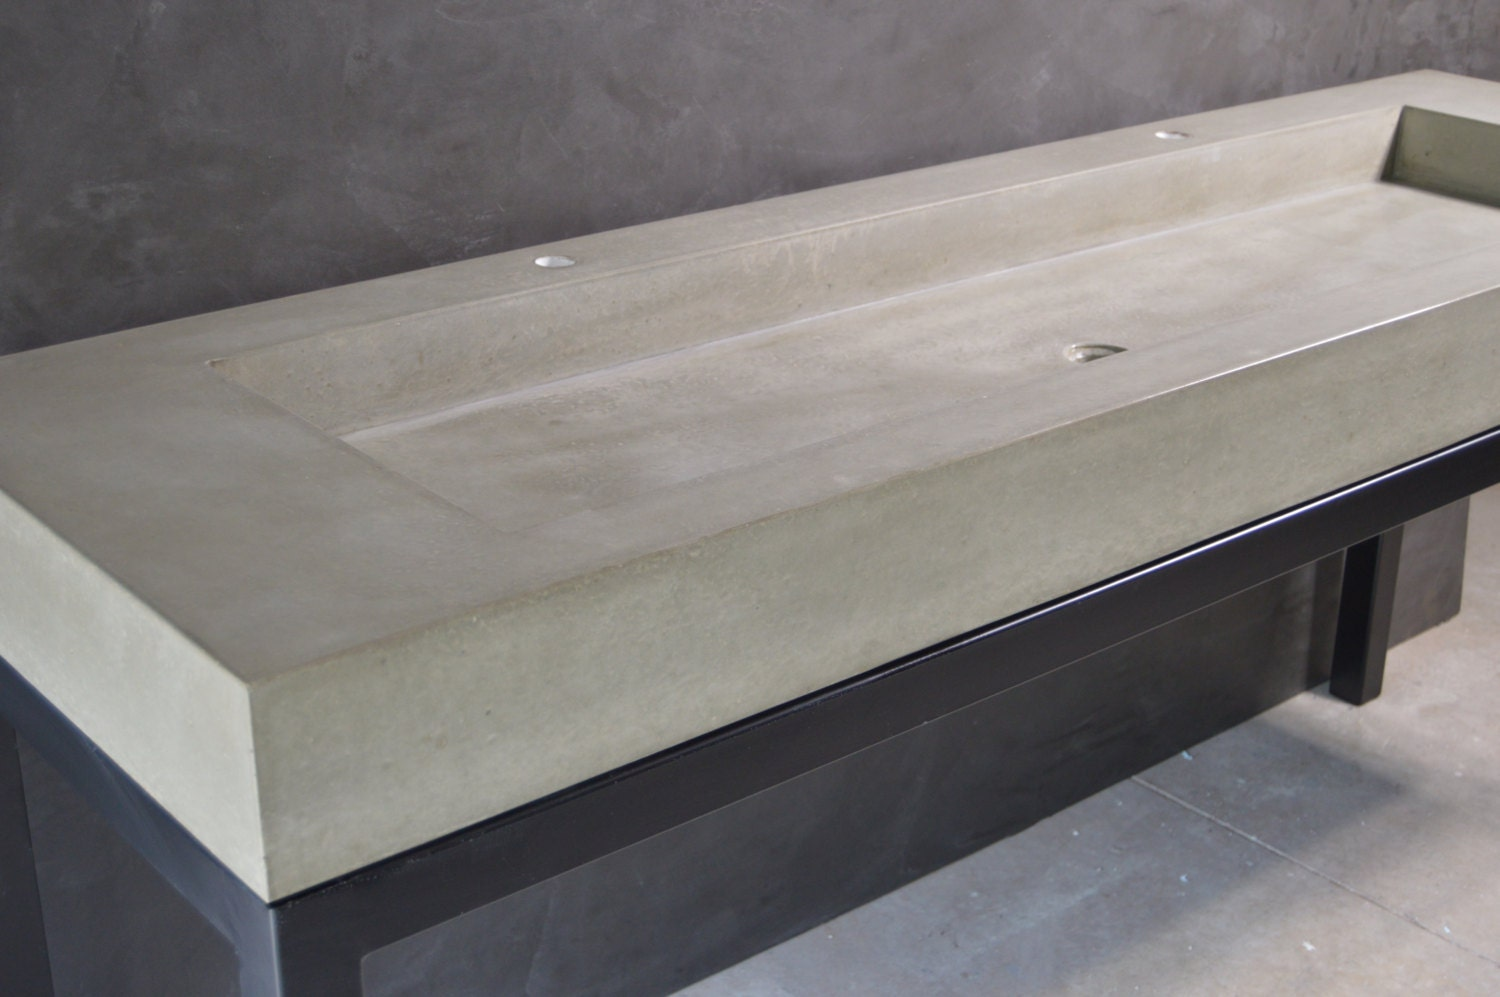 Concrete Trough Sink : Concrete Trough Sink with Base by stogsconcretedesign on Etsy